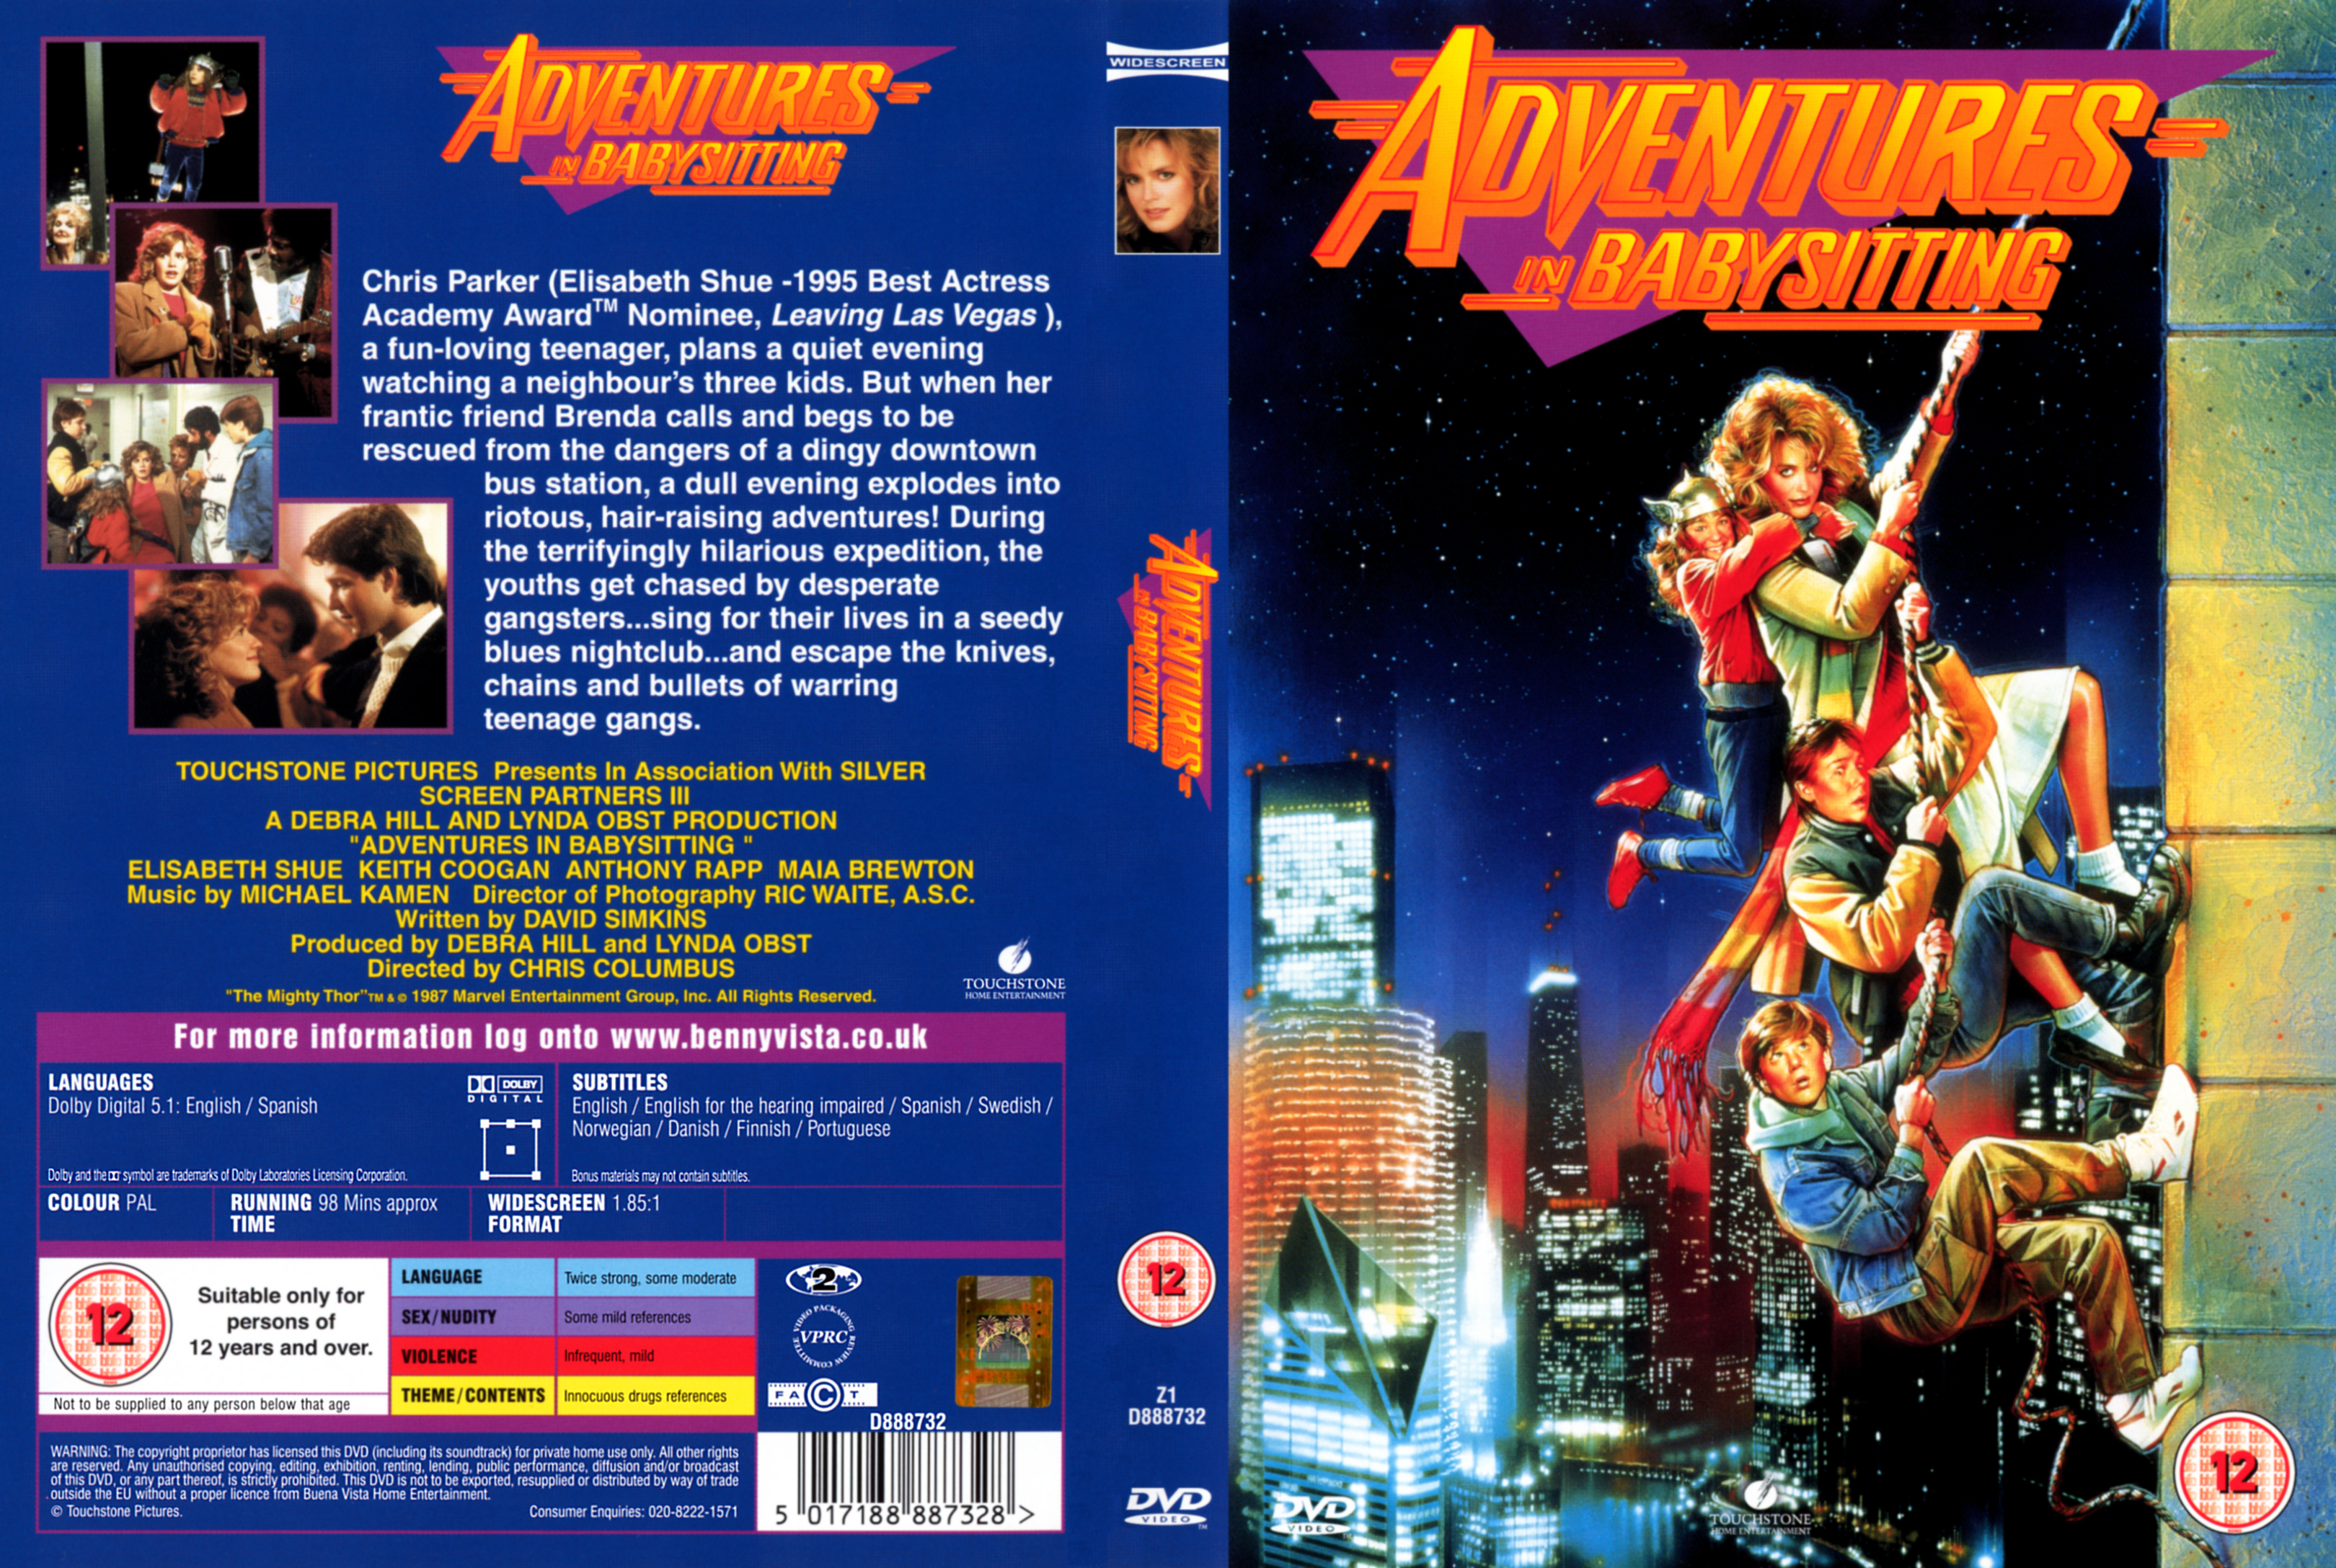 Adventures In Babysitting Dvd Covers Cover Century Over 500 000 Album Art Covers For Free